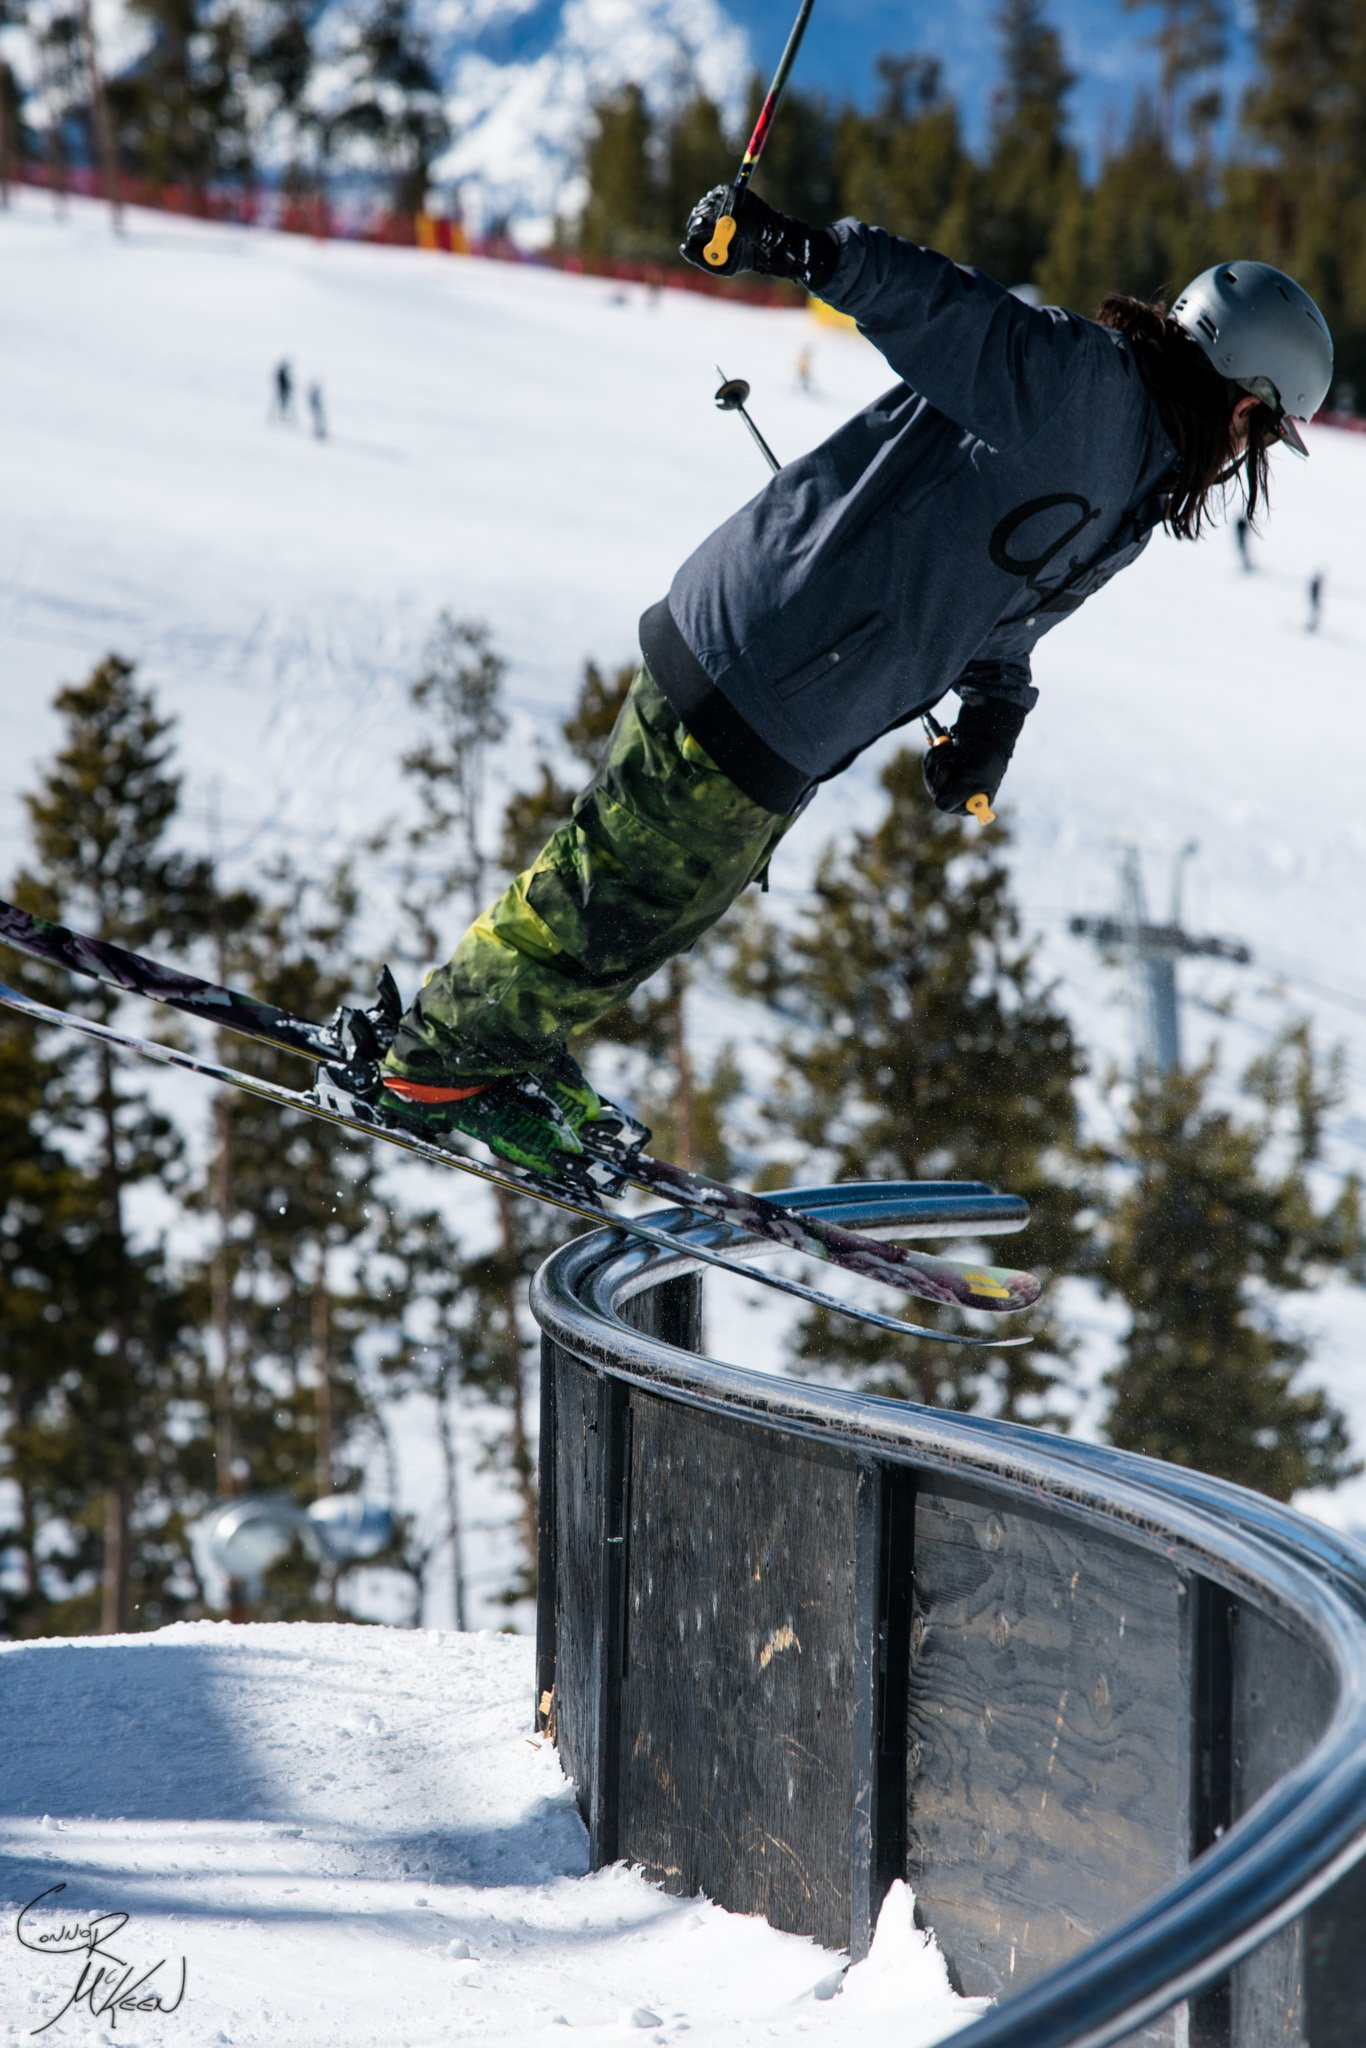 Nose pressin' the S Rail at Keystone